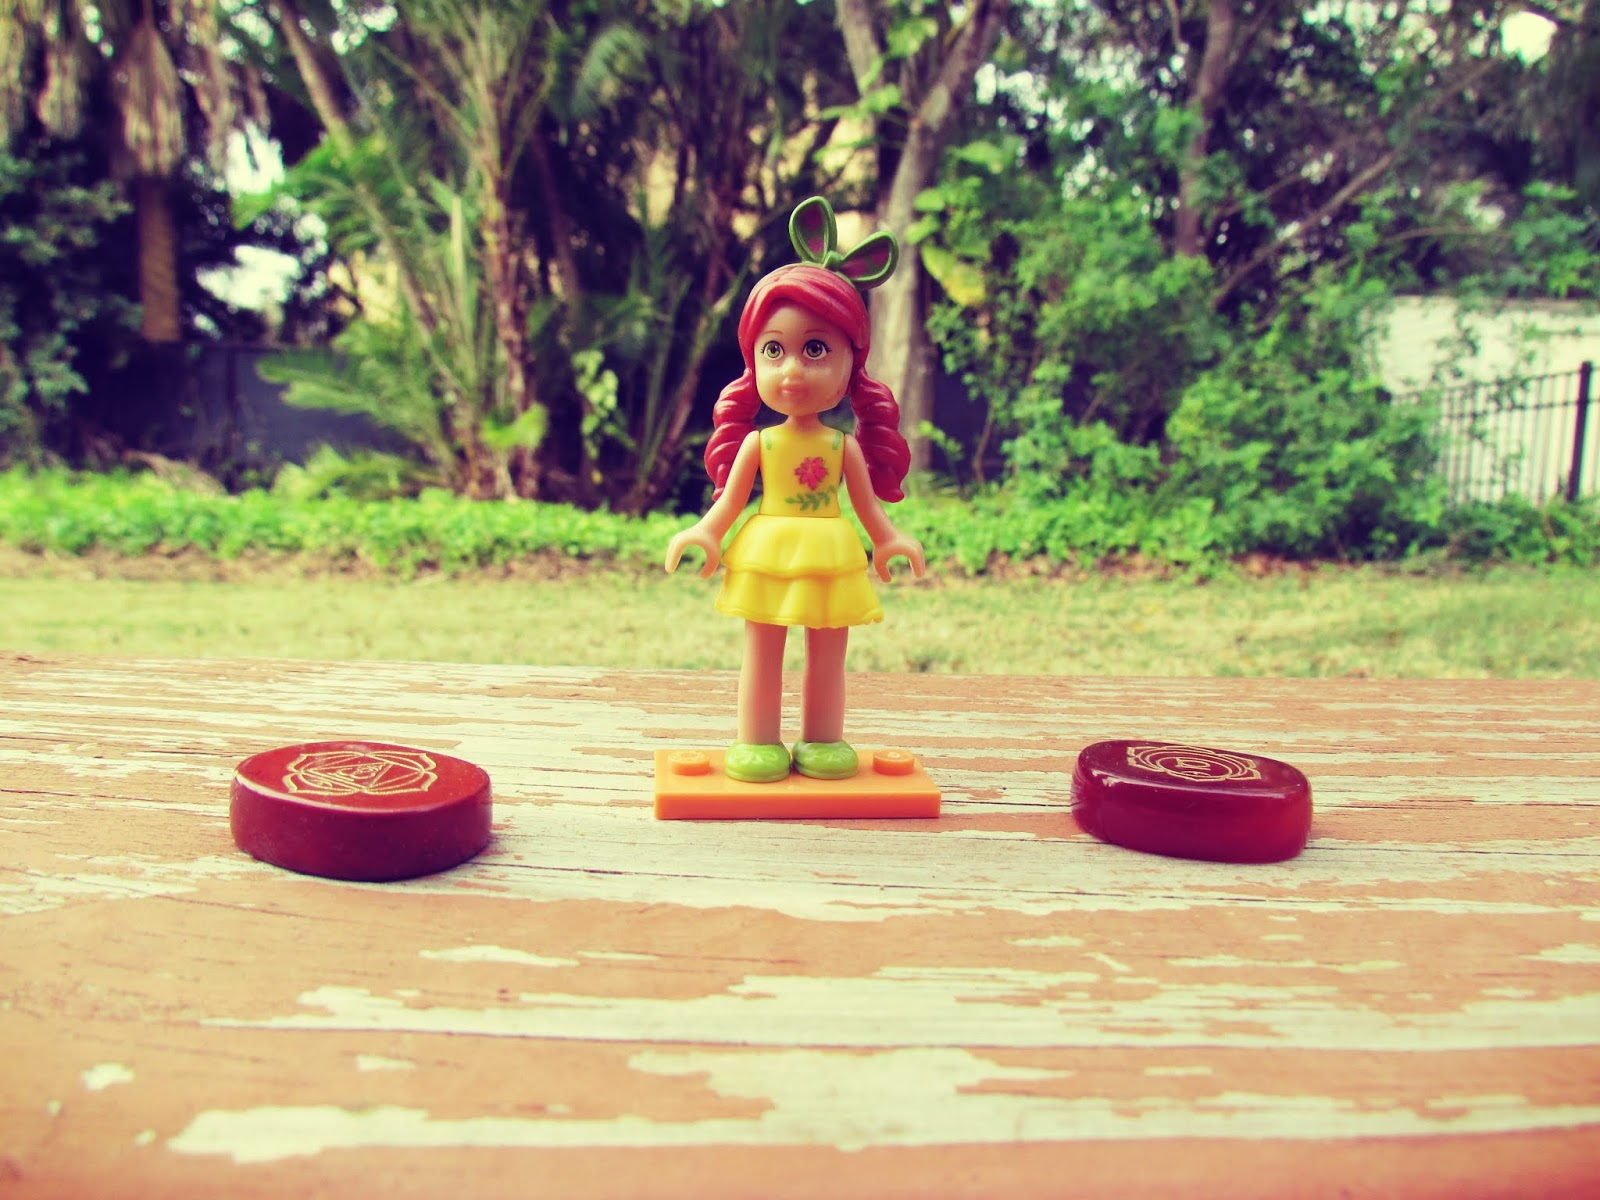 A tiny American Girl Doll Figurine on the back porch in a tropical style backyard setting